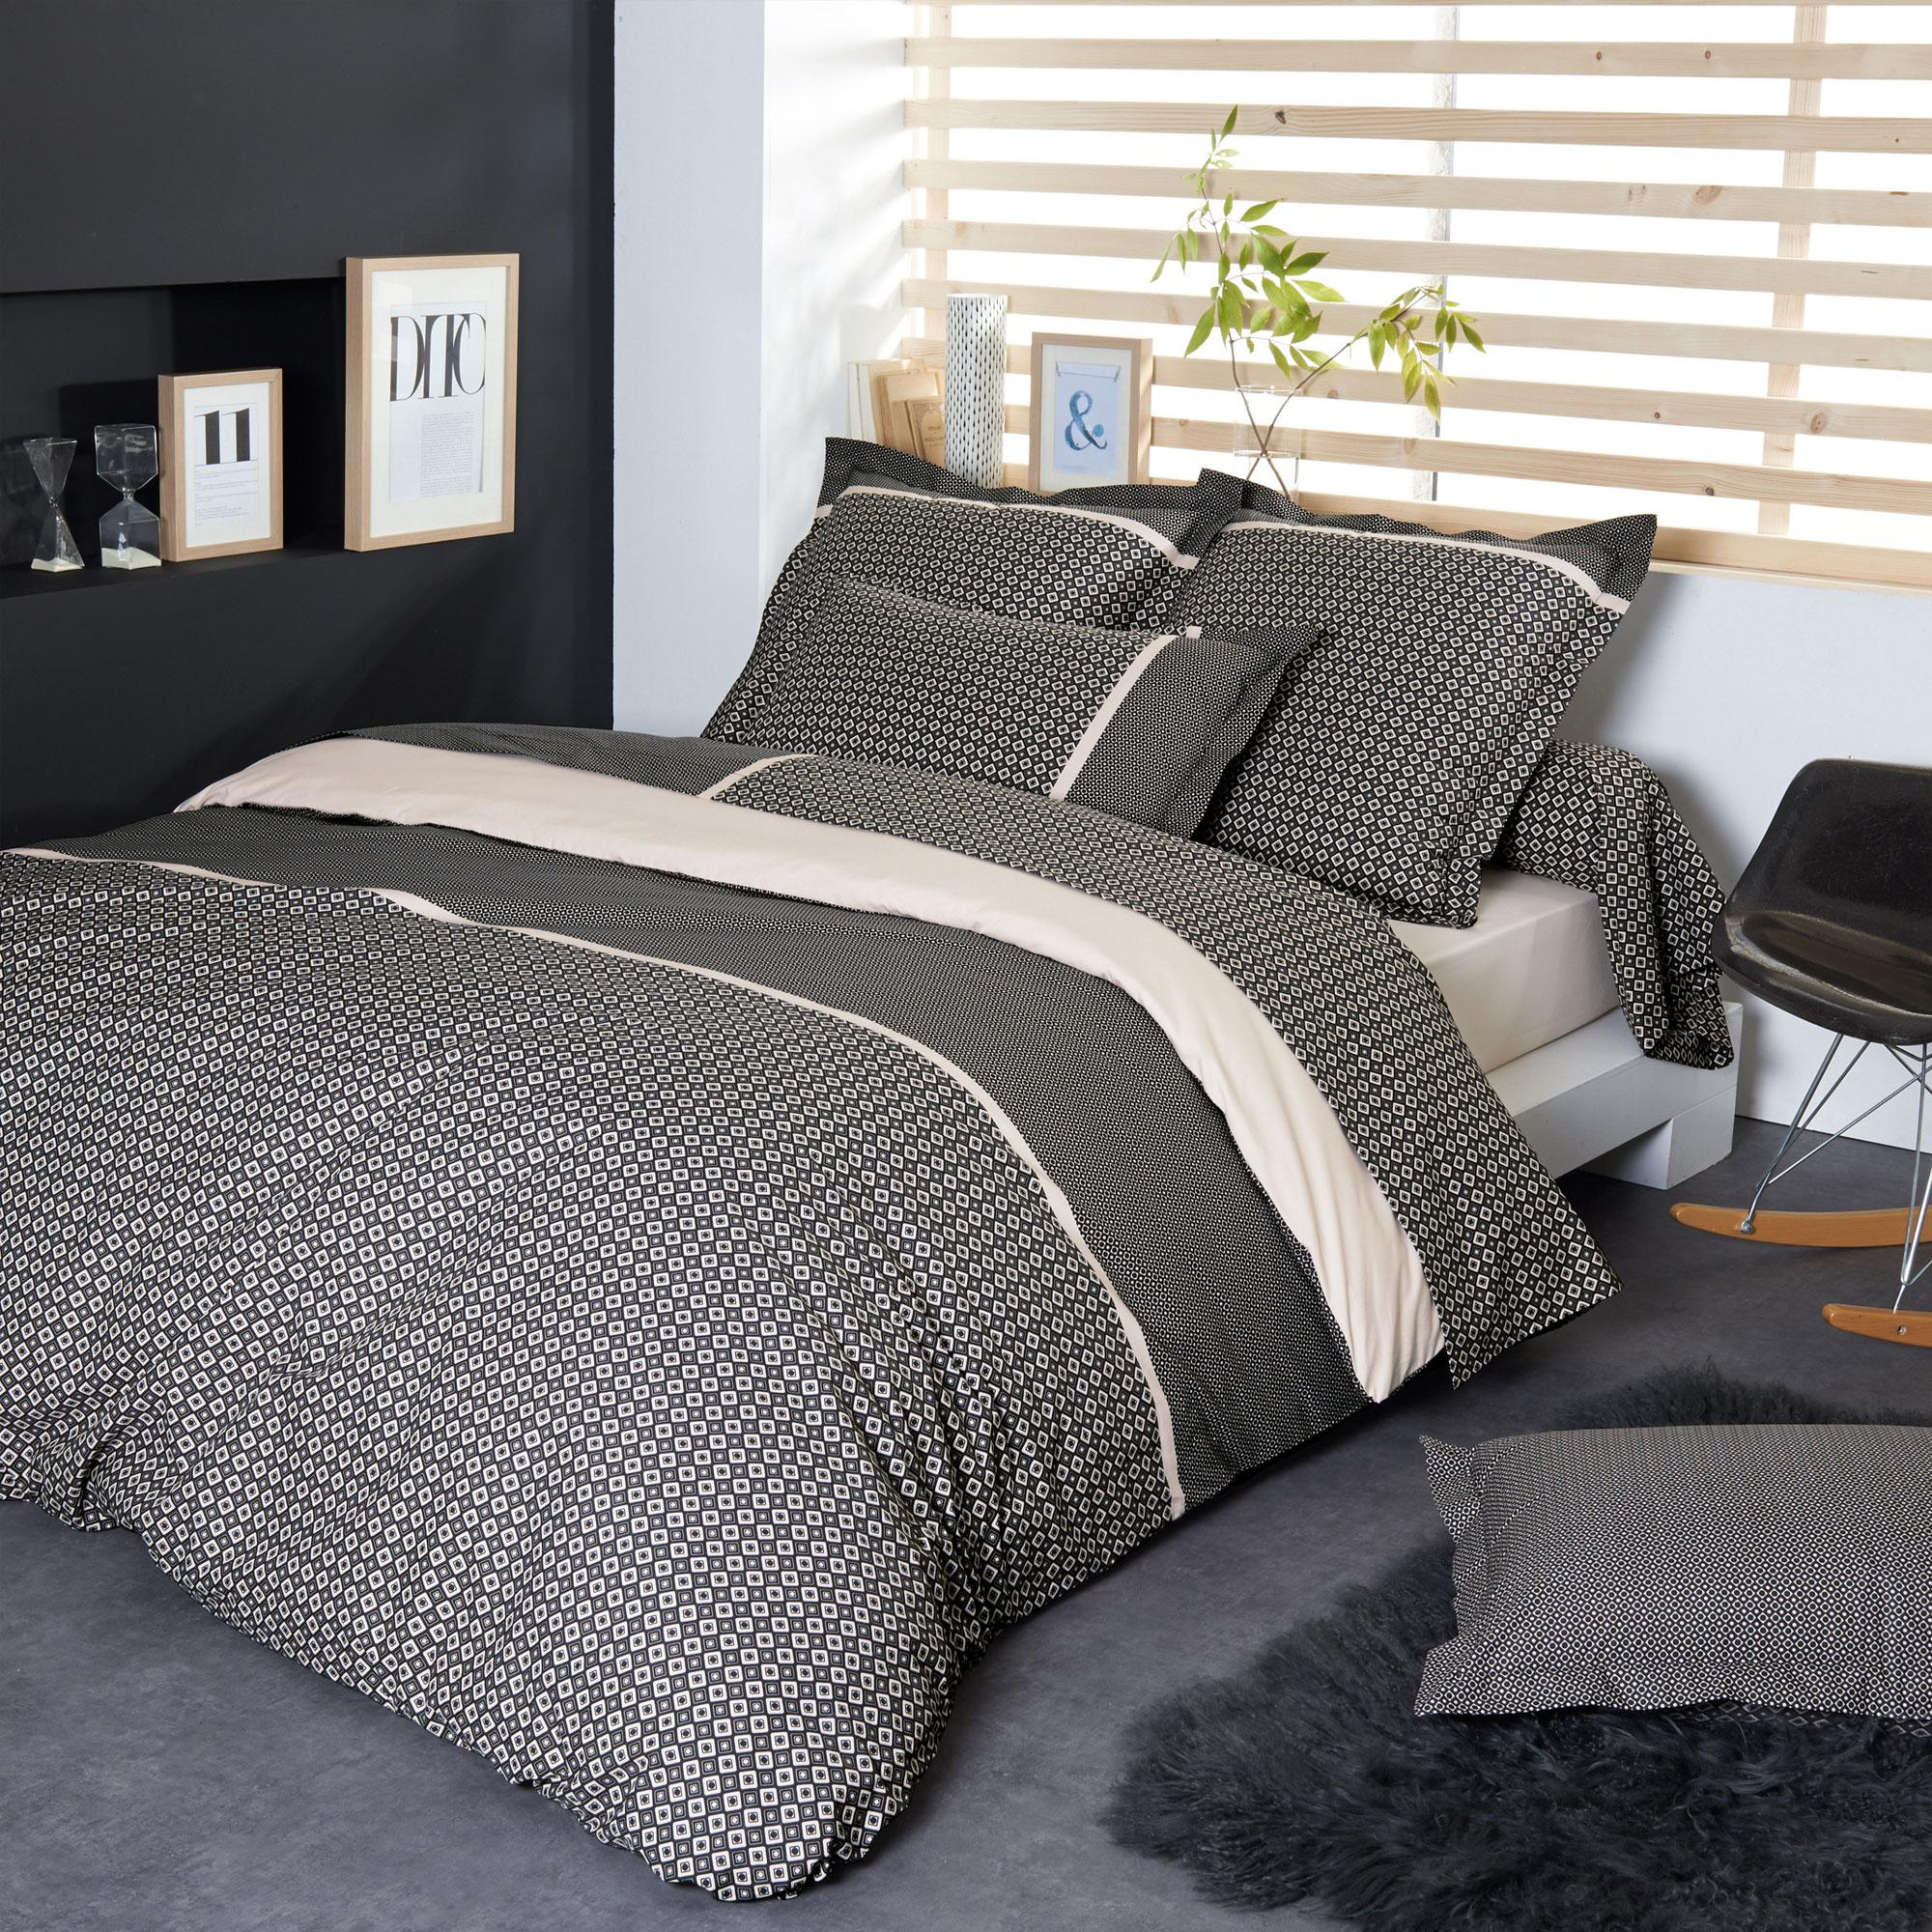 housse de couette percale pur coton peign 200x200 cm. Black Bedroom Furniture Sets. Home Design Ideas